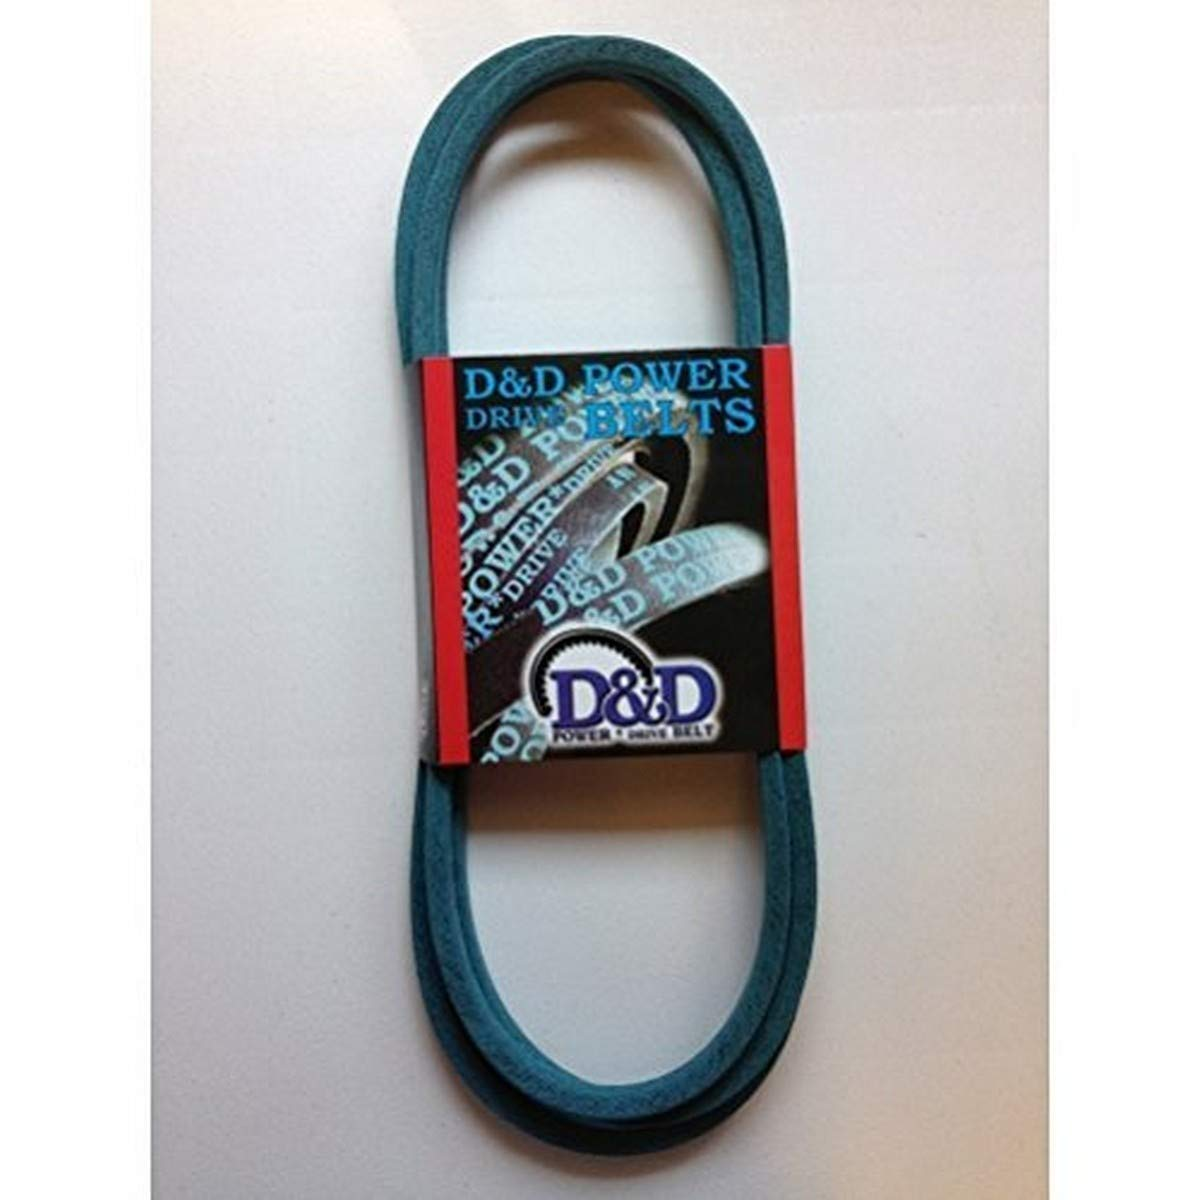 Our shop OFFers the best service DD PowerDrive 482138 SCAG Replacement Aramid 1 Band High quality Belt